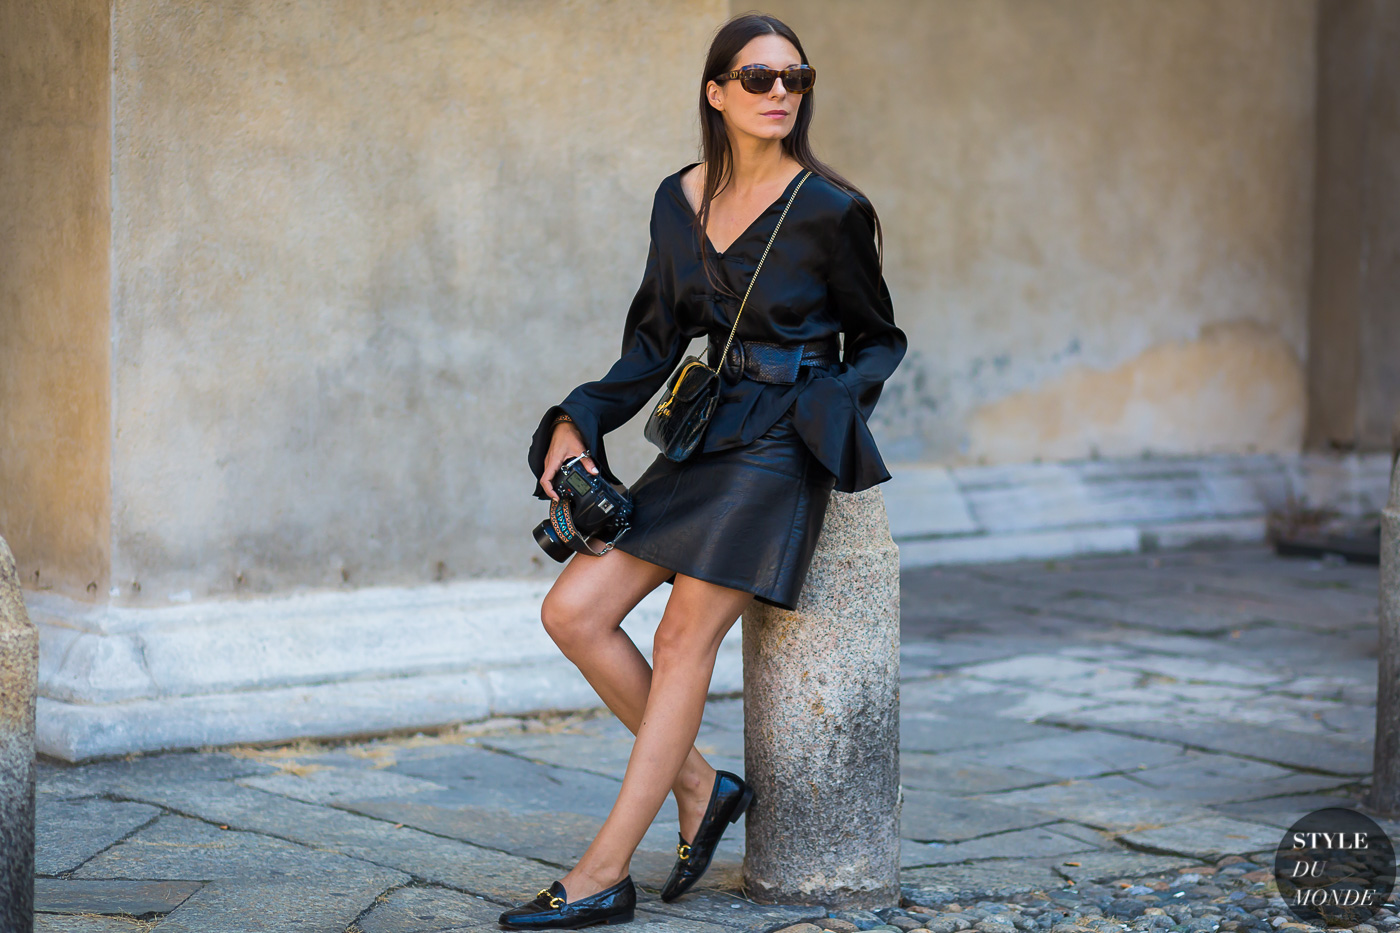 andreea-bogdan-by-styledumonde-street-style-fashion-photography